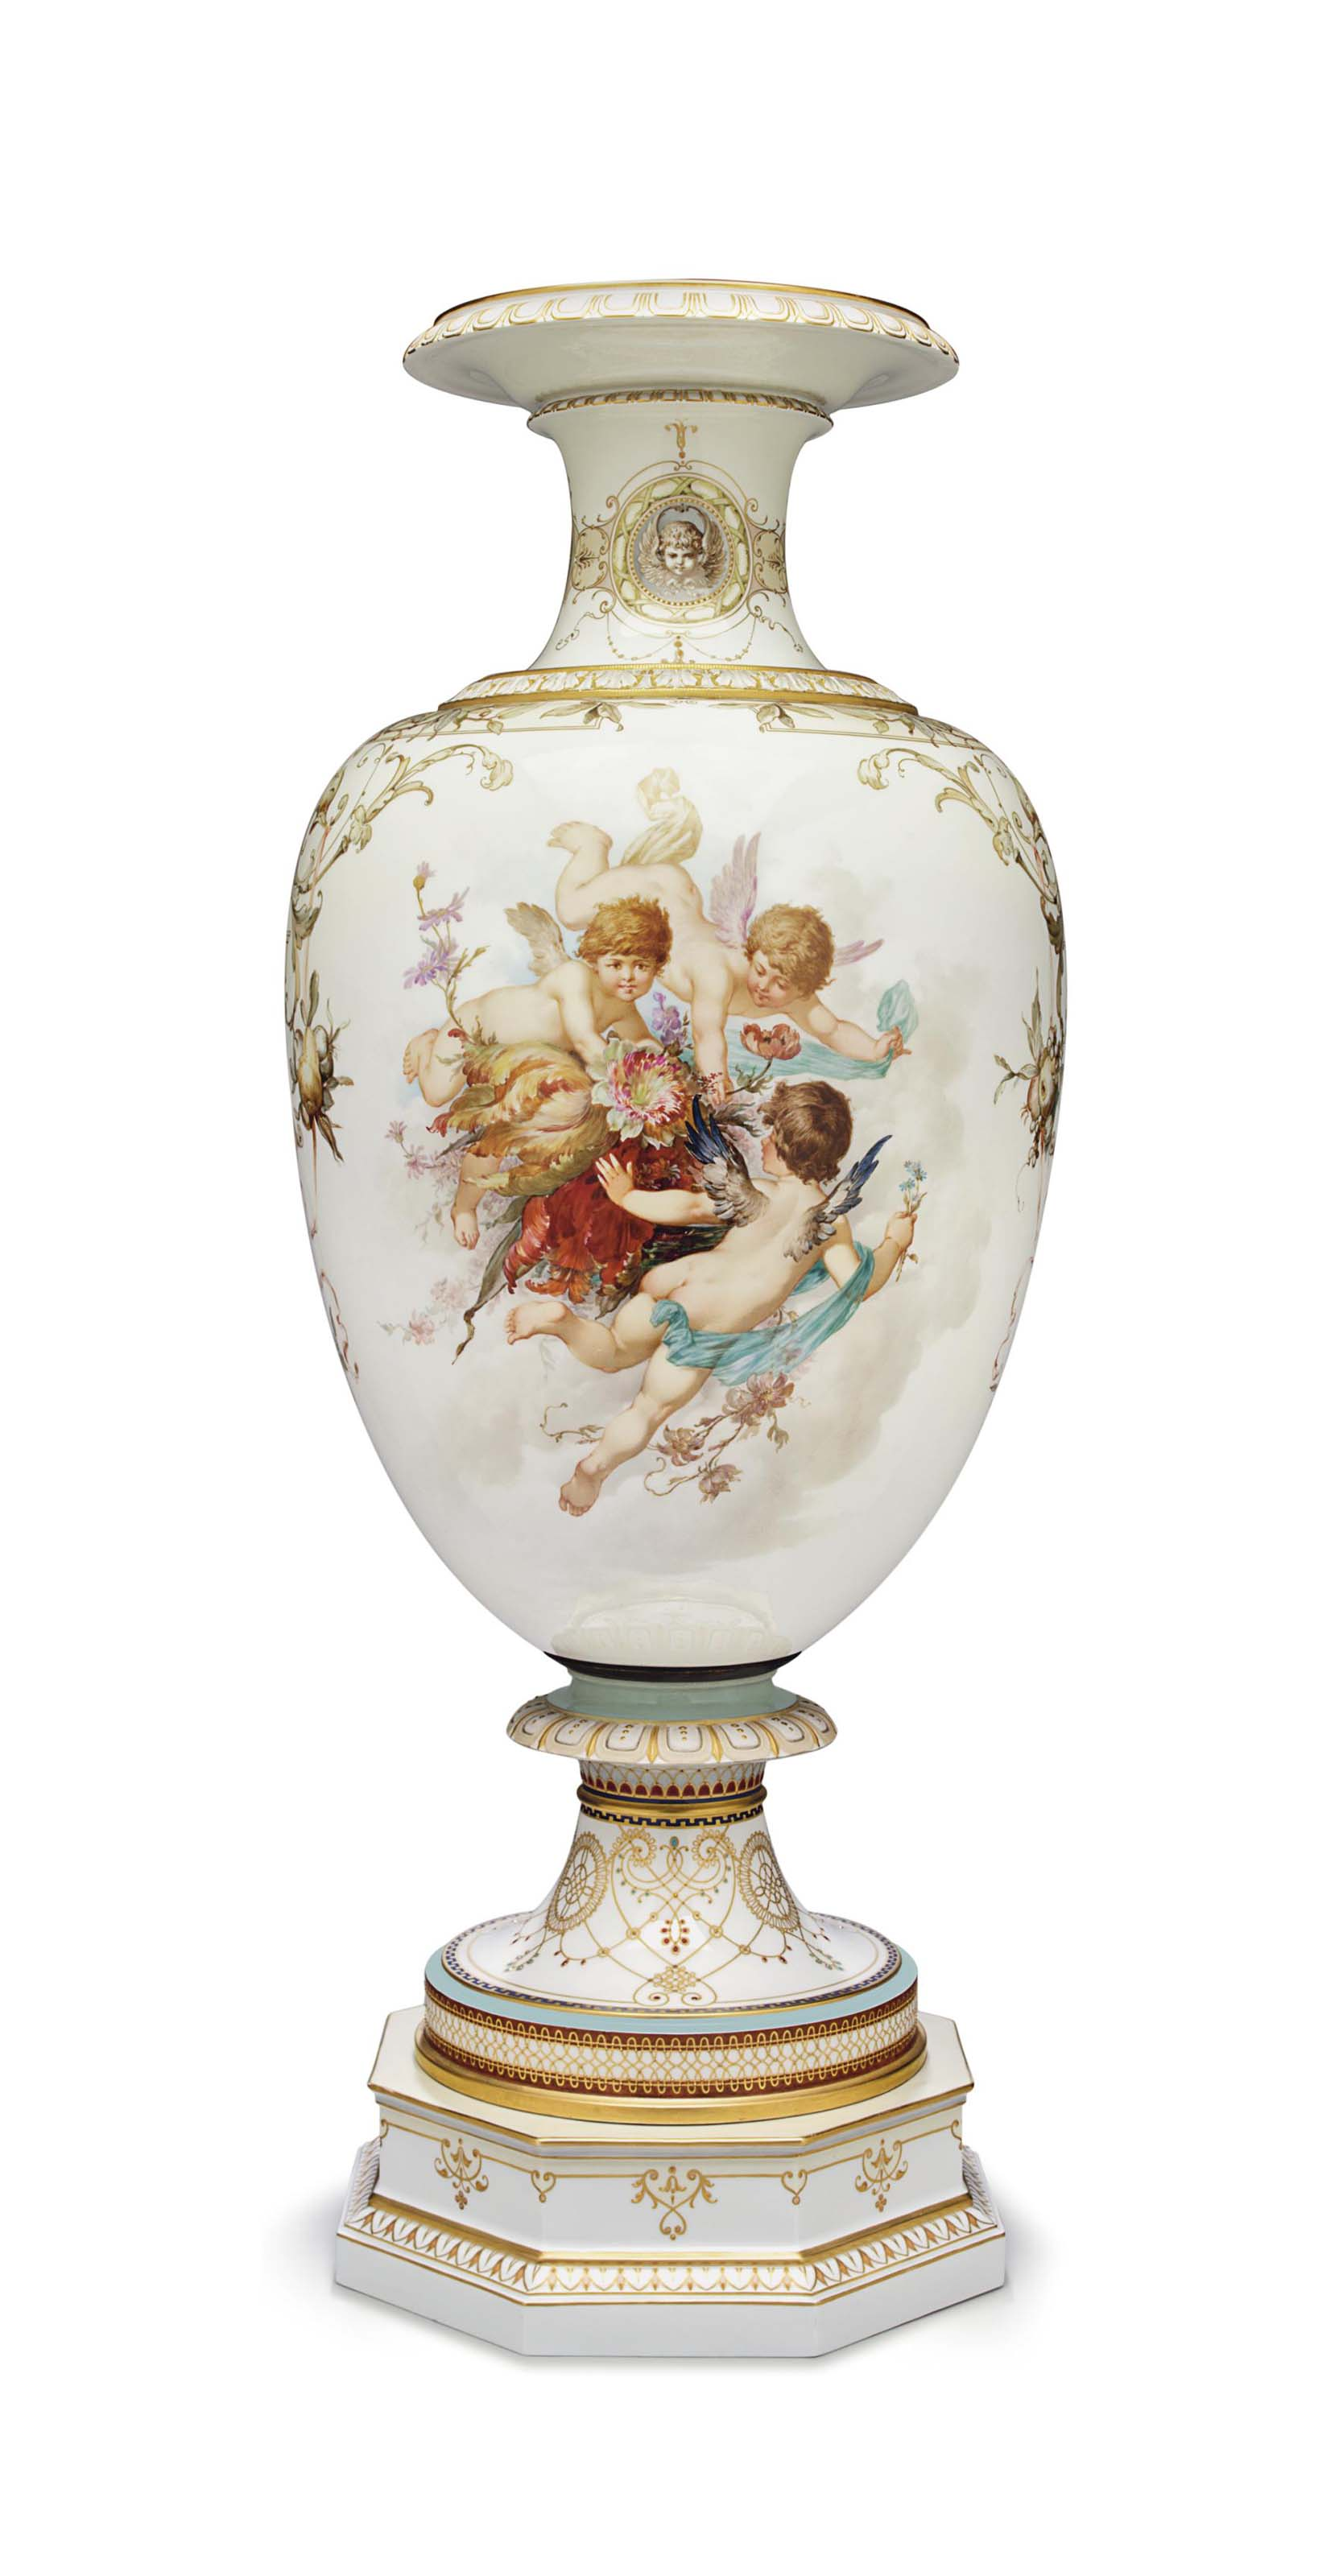 A LARGE BERLIN (K.P.M.) PORCELAIN 'JEWELED' VASE ON OCTAGONAL STAND